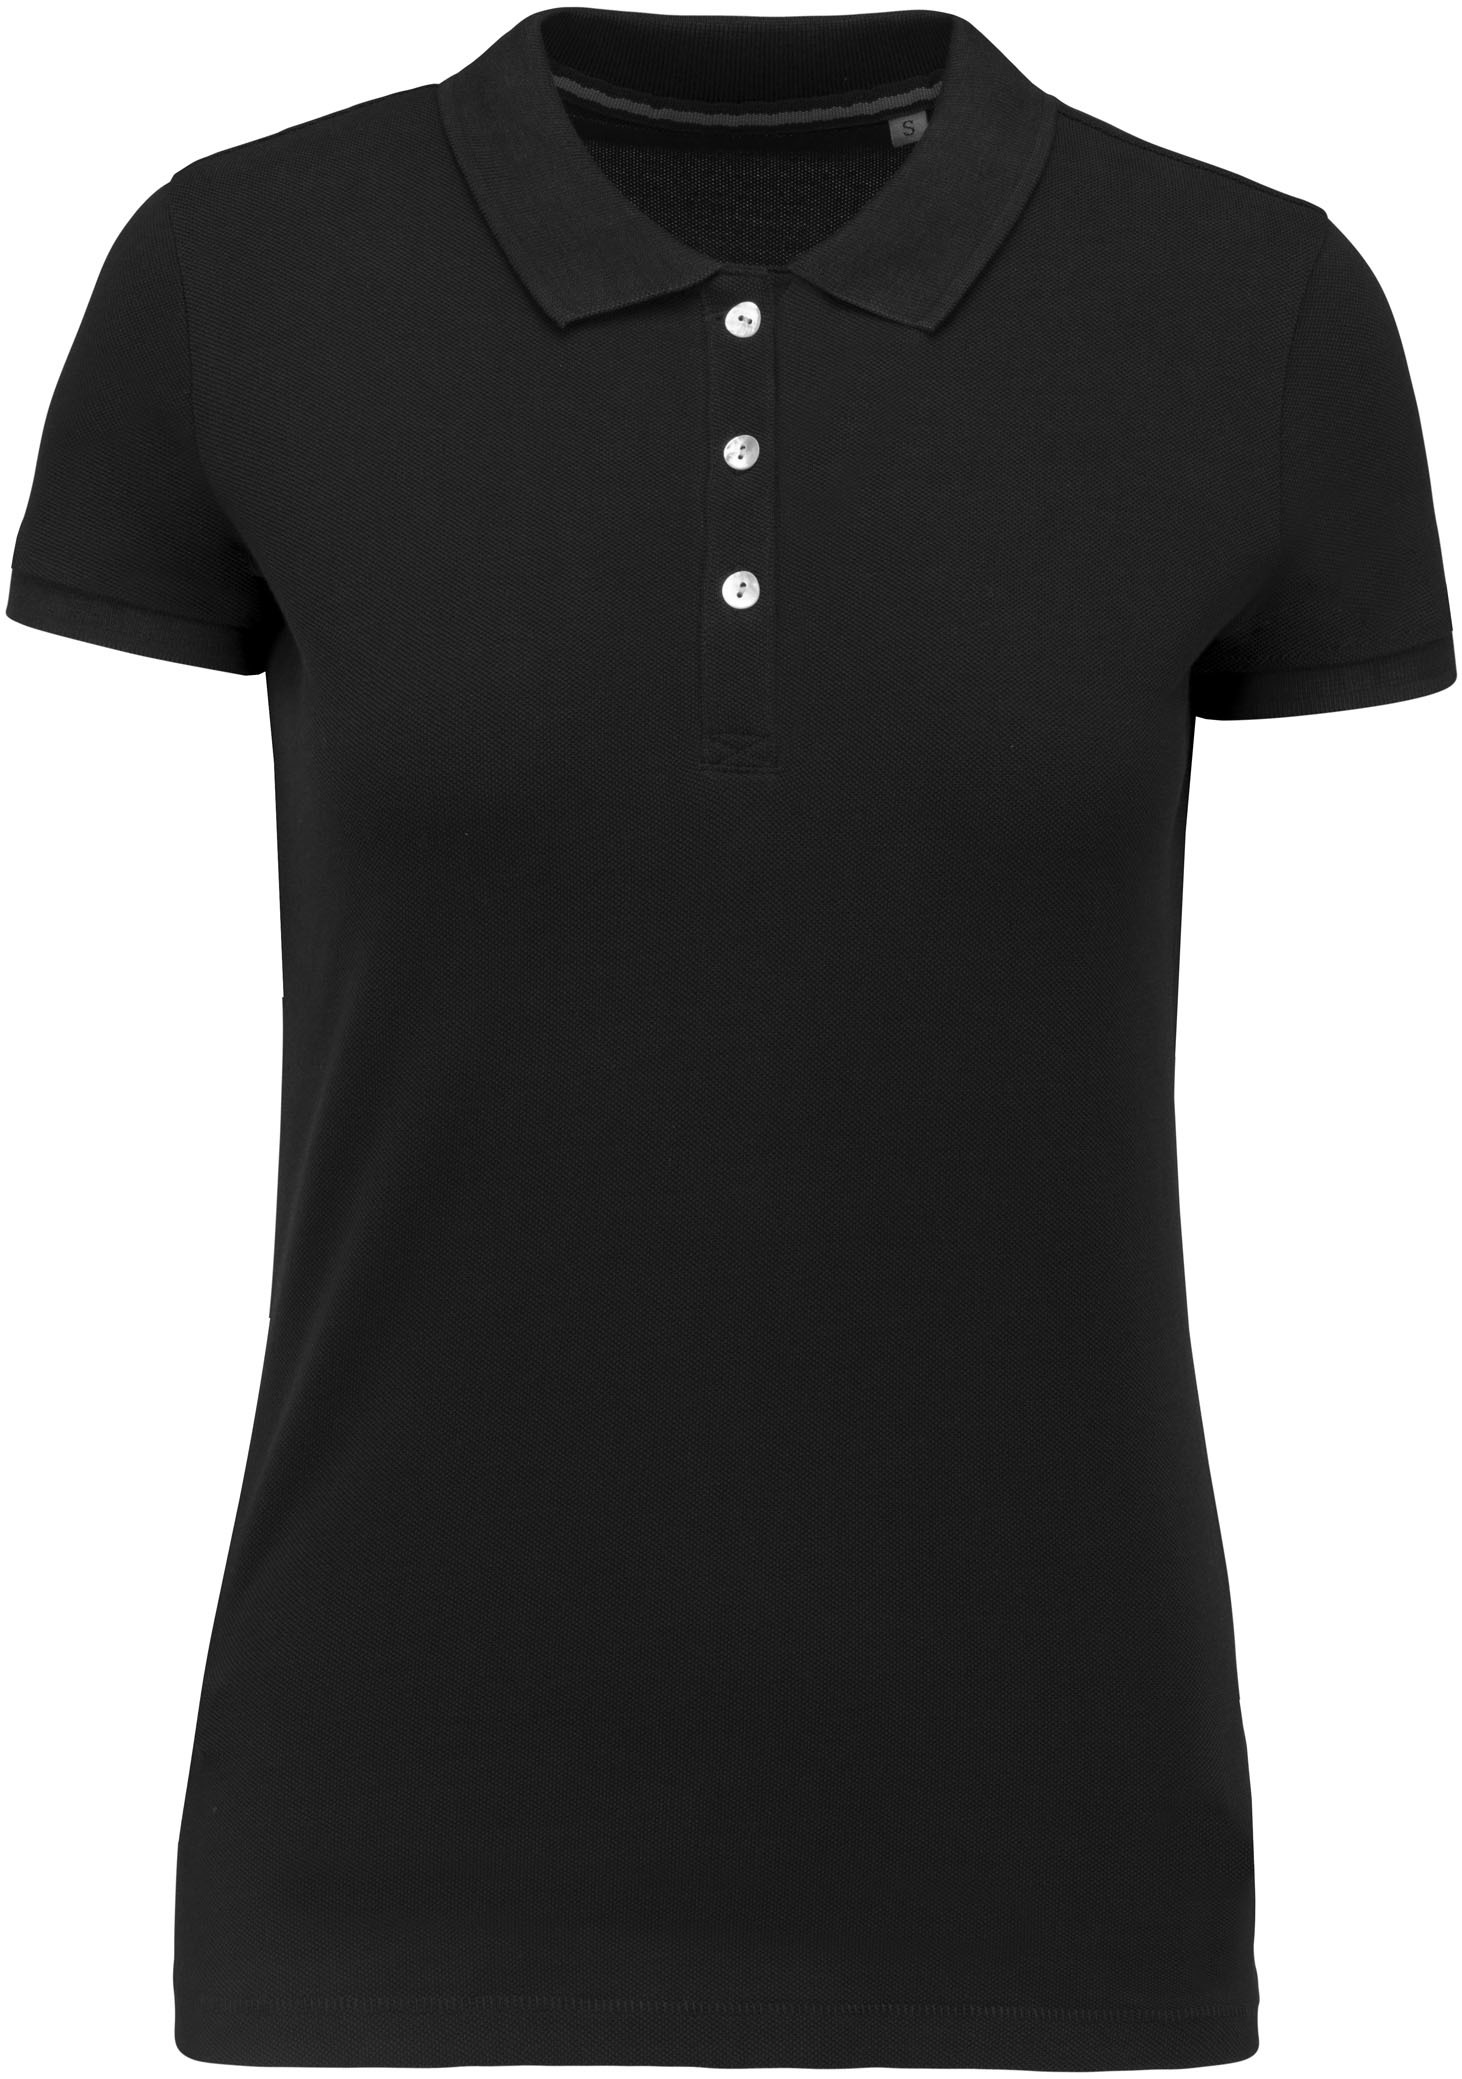 Polo Supima® manches courtes femme - 2-1540-1